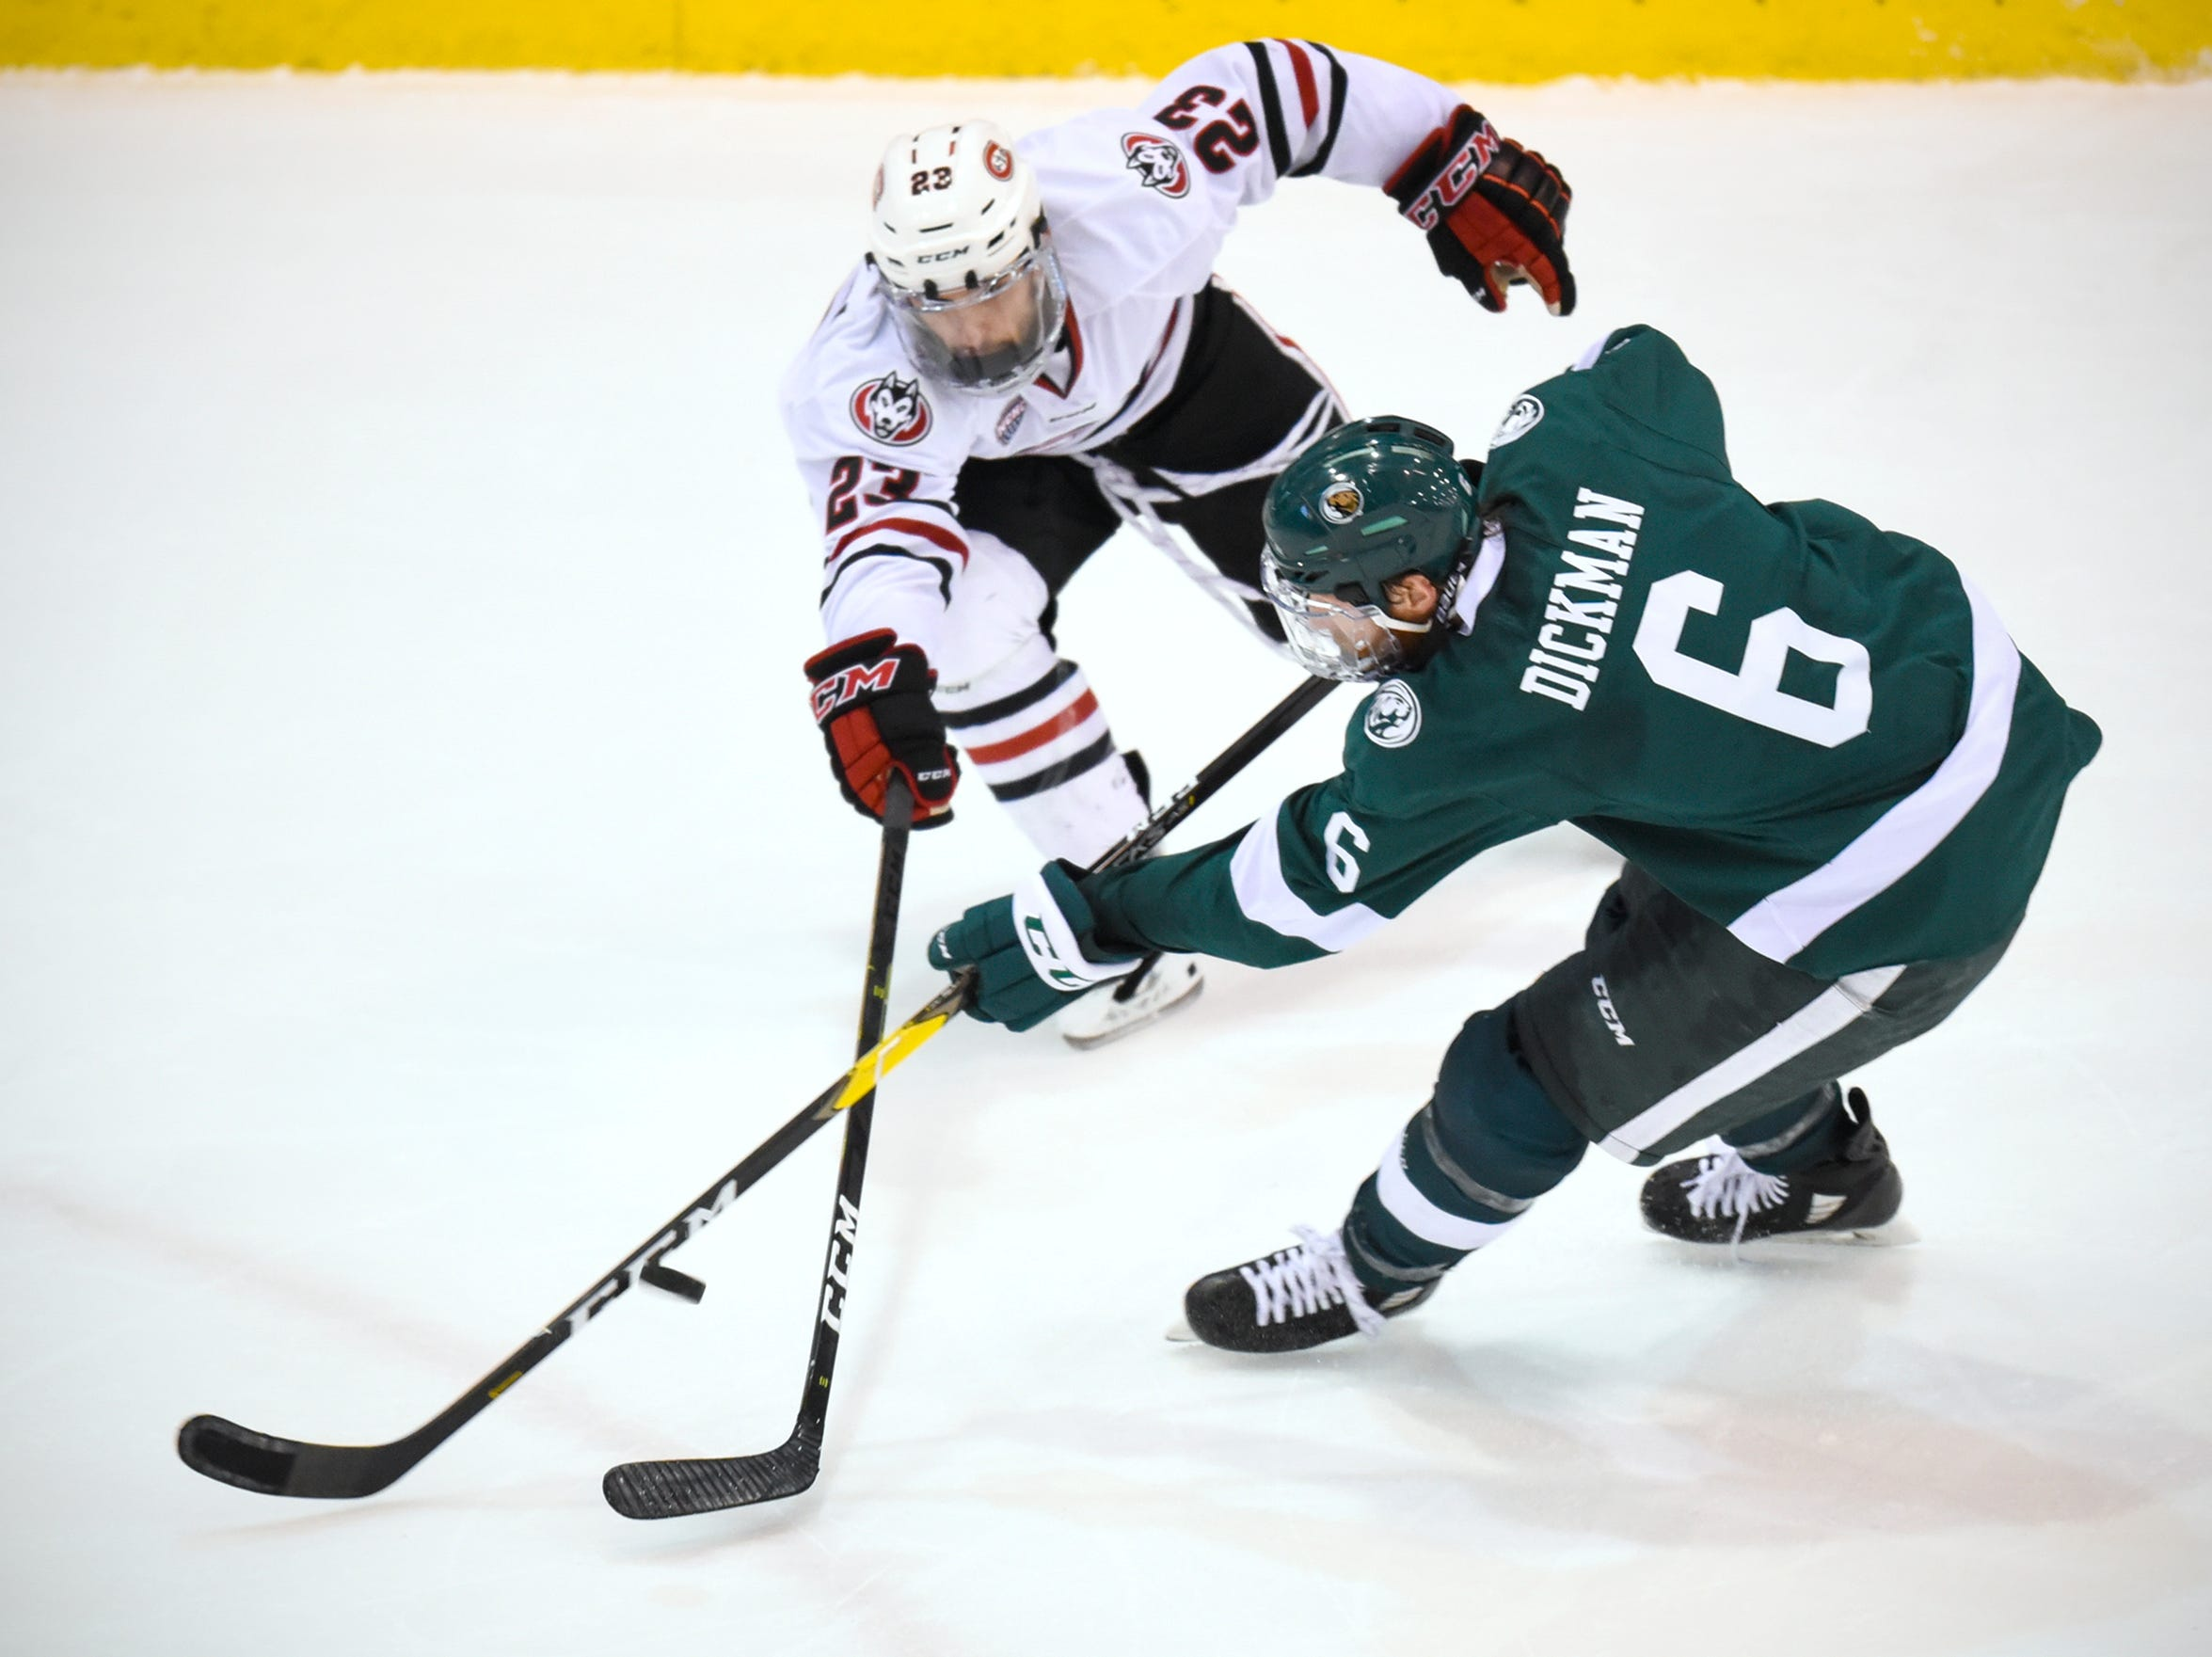 Robby Jackson of St. Cloud State and Jay Dickman of Bemidji State battle for control of the puck during the second period of the Friday, Nov. 16, game at the Herb Brooks National Hockey Center in St. Cloud.